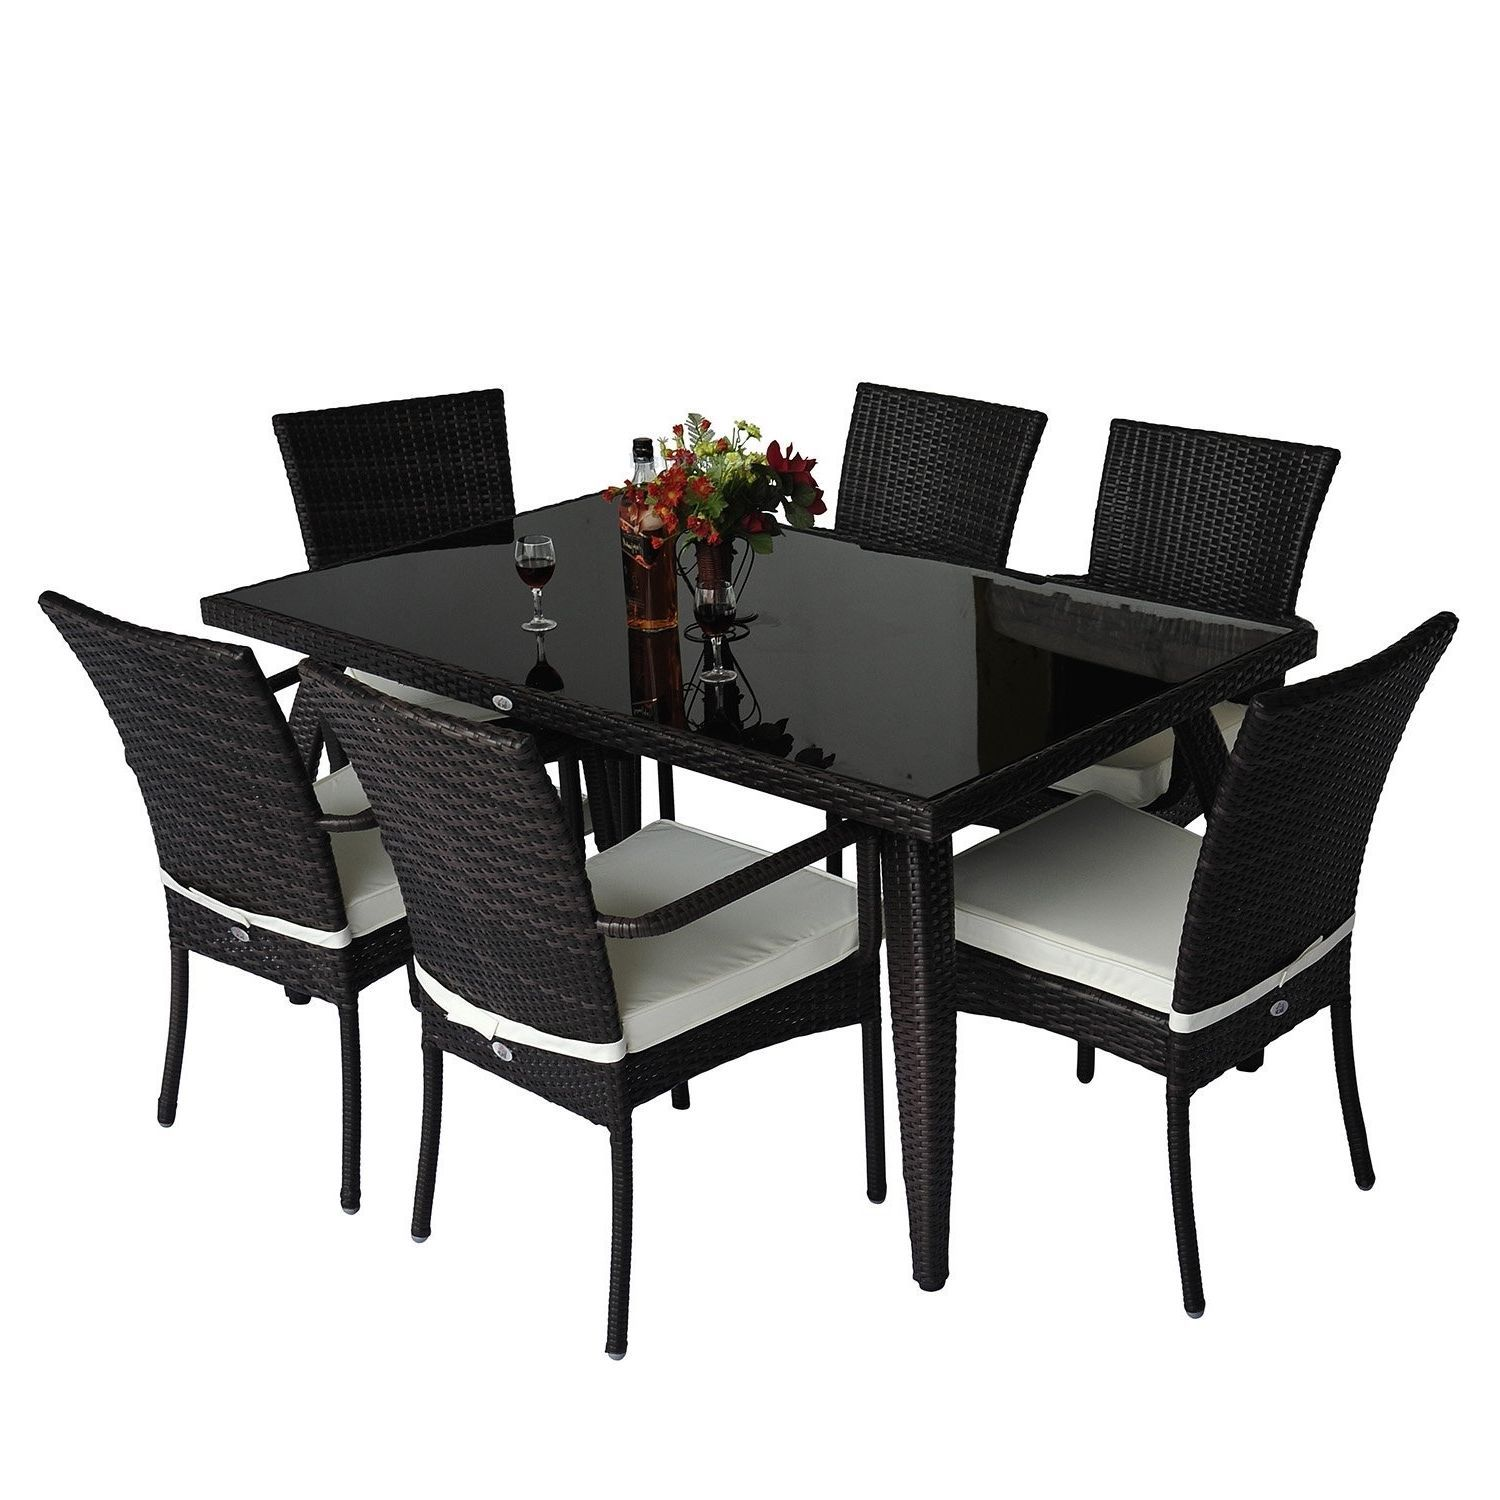 Rattan Garden Dining Set 7pcs Luxury Patio Furniture Rectangular Table 6 Chairs